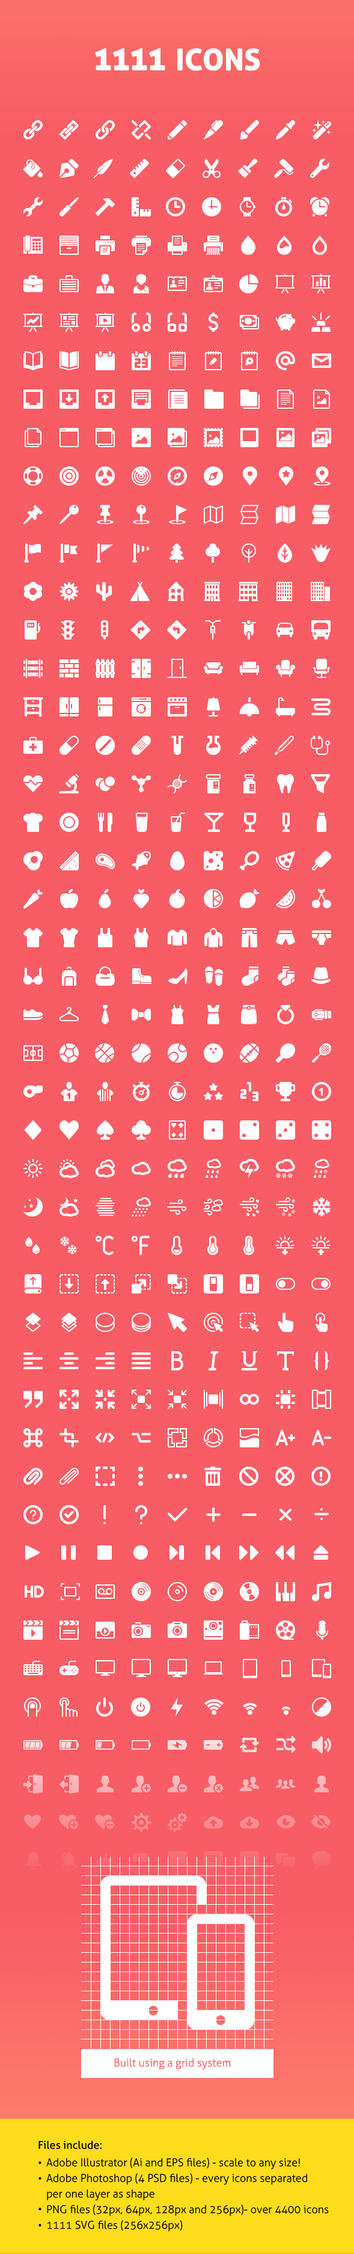 1000+ Vector Icons by mygreed